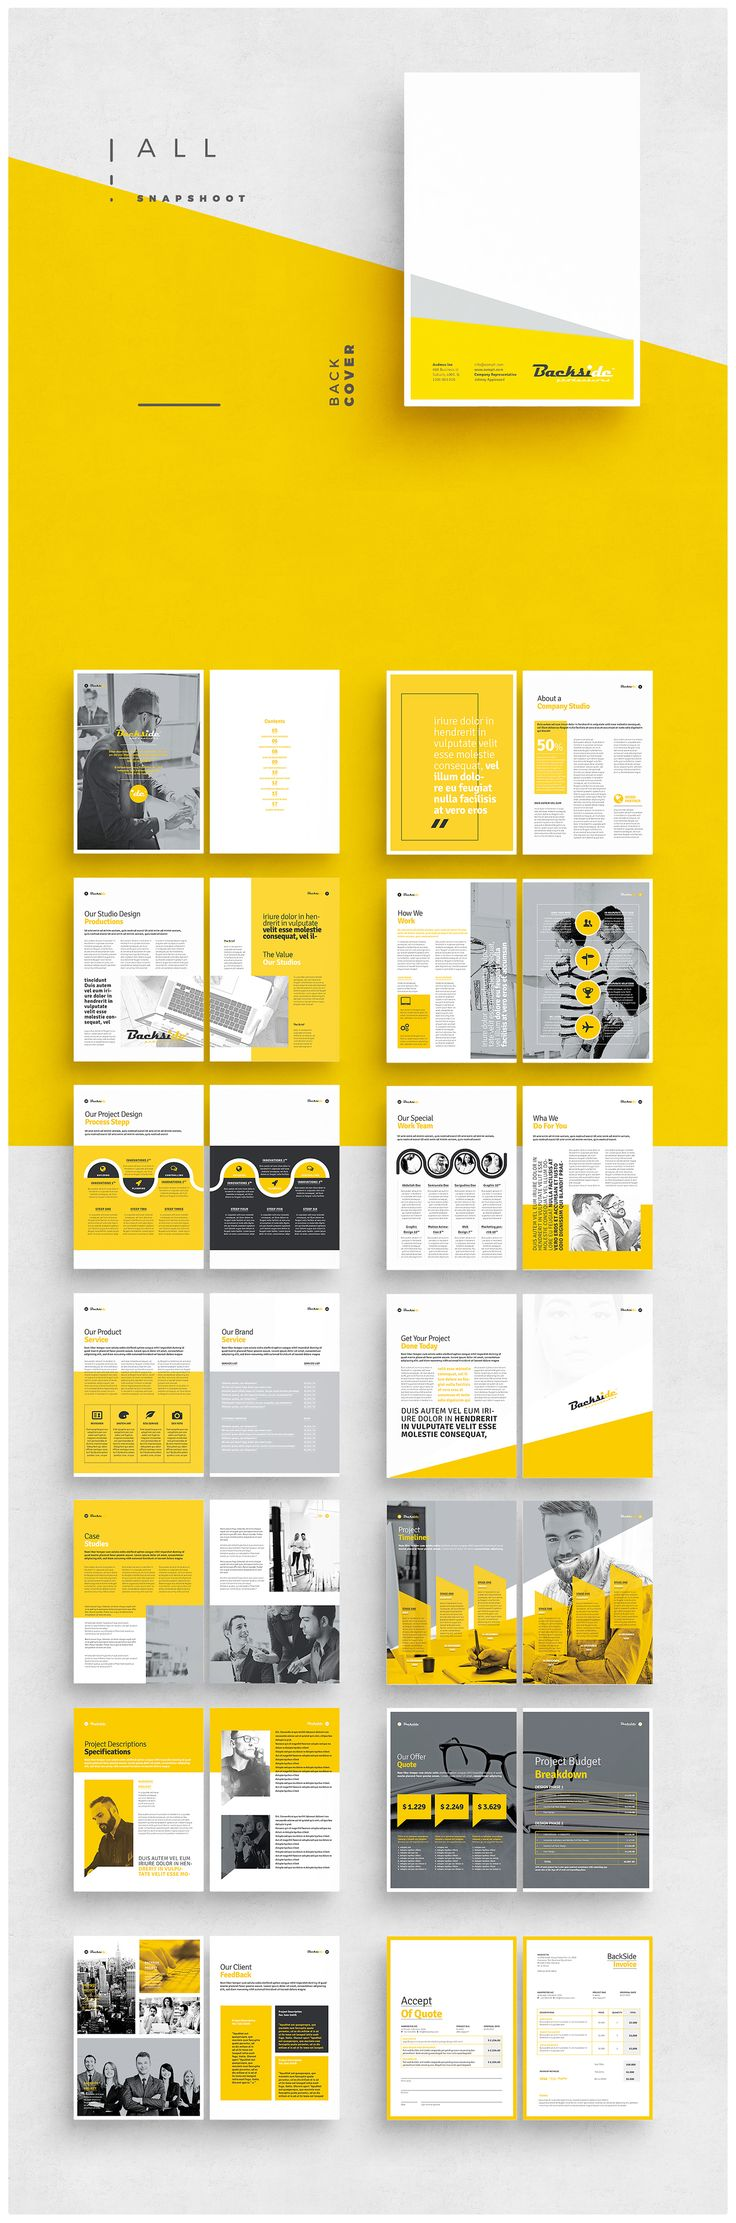 brochure, croporate, corporate brochure, proposal, annual report, offer, financial, clean, modern, brief, book, catalog, flat, brochure brochure, a4 brochure, typoedition, us letter, us letter size, business, corporate, brochure, croporate, corporate broc…